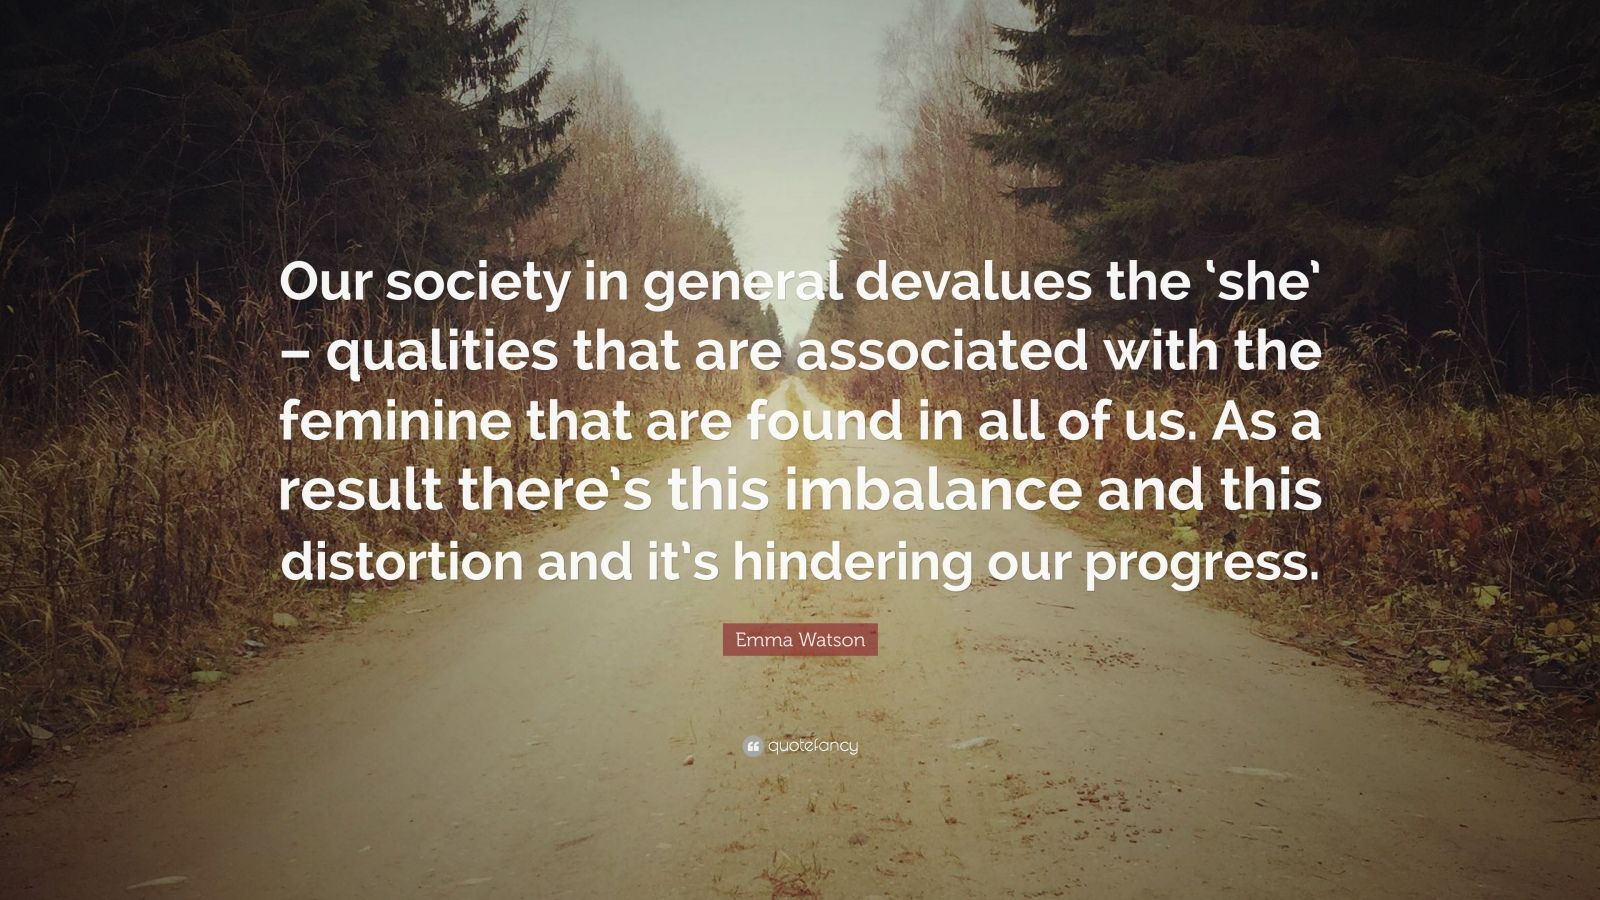 """Emma Watson Quote: """"Our society in general devalues the 'she' – qualities that are associated with the feminine that are found in all of us. As a result there's this imbalance and this distortion and it's hindering our progress."""""""